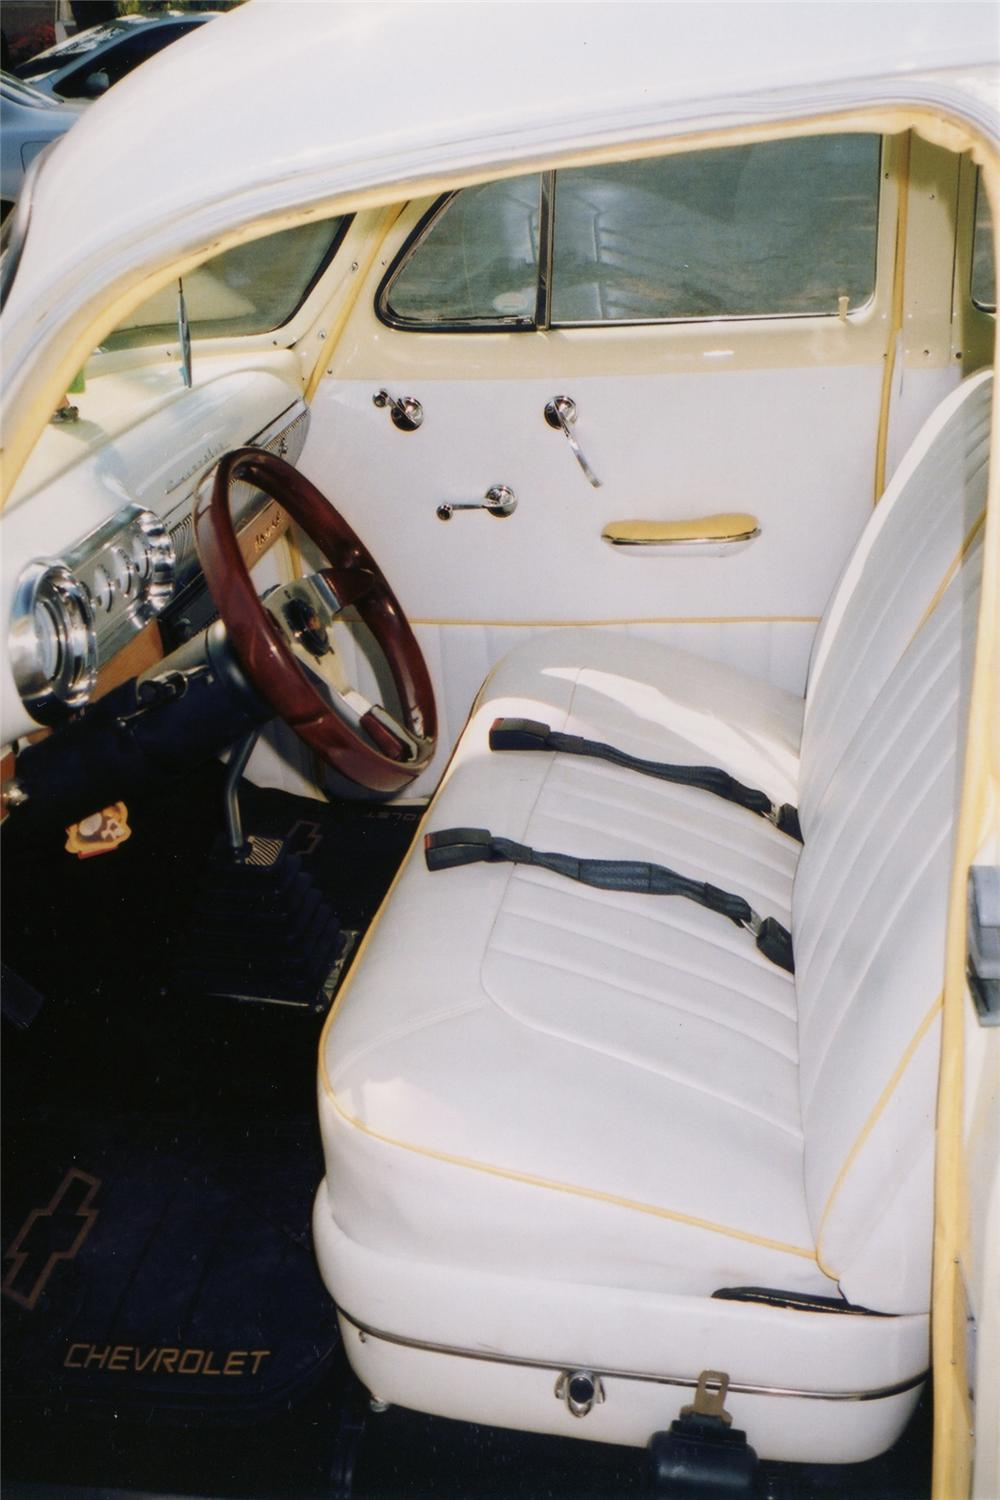 1953 CHEVROLET CUSTOM STATION WAGON - Interior - 81345